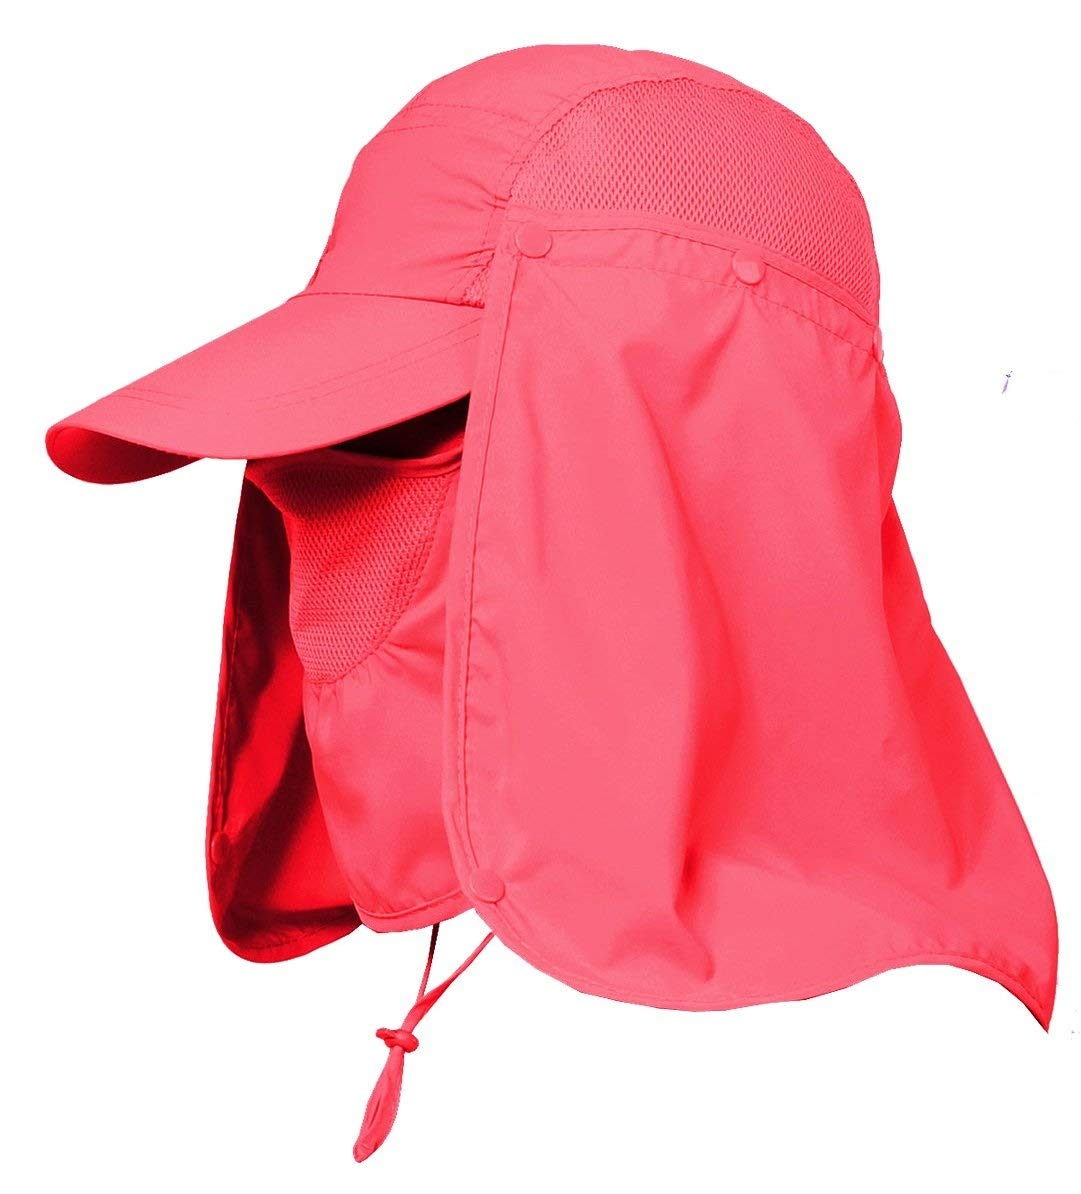 57cbeeab409 Buy Hiking Cap Hat - Dark Pink Online at Low Prices in India - Amazon.in